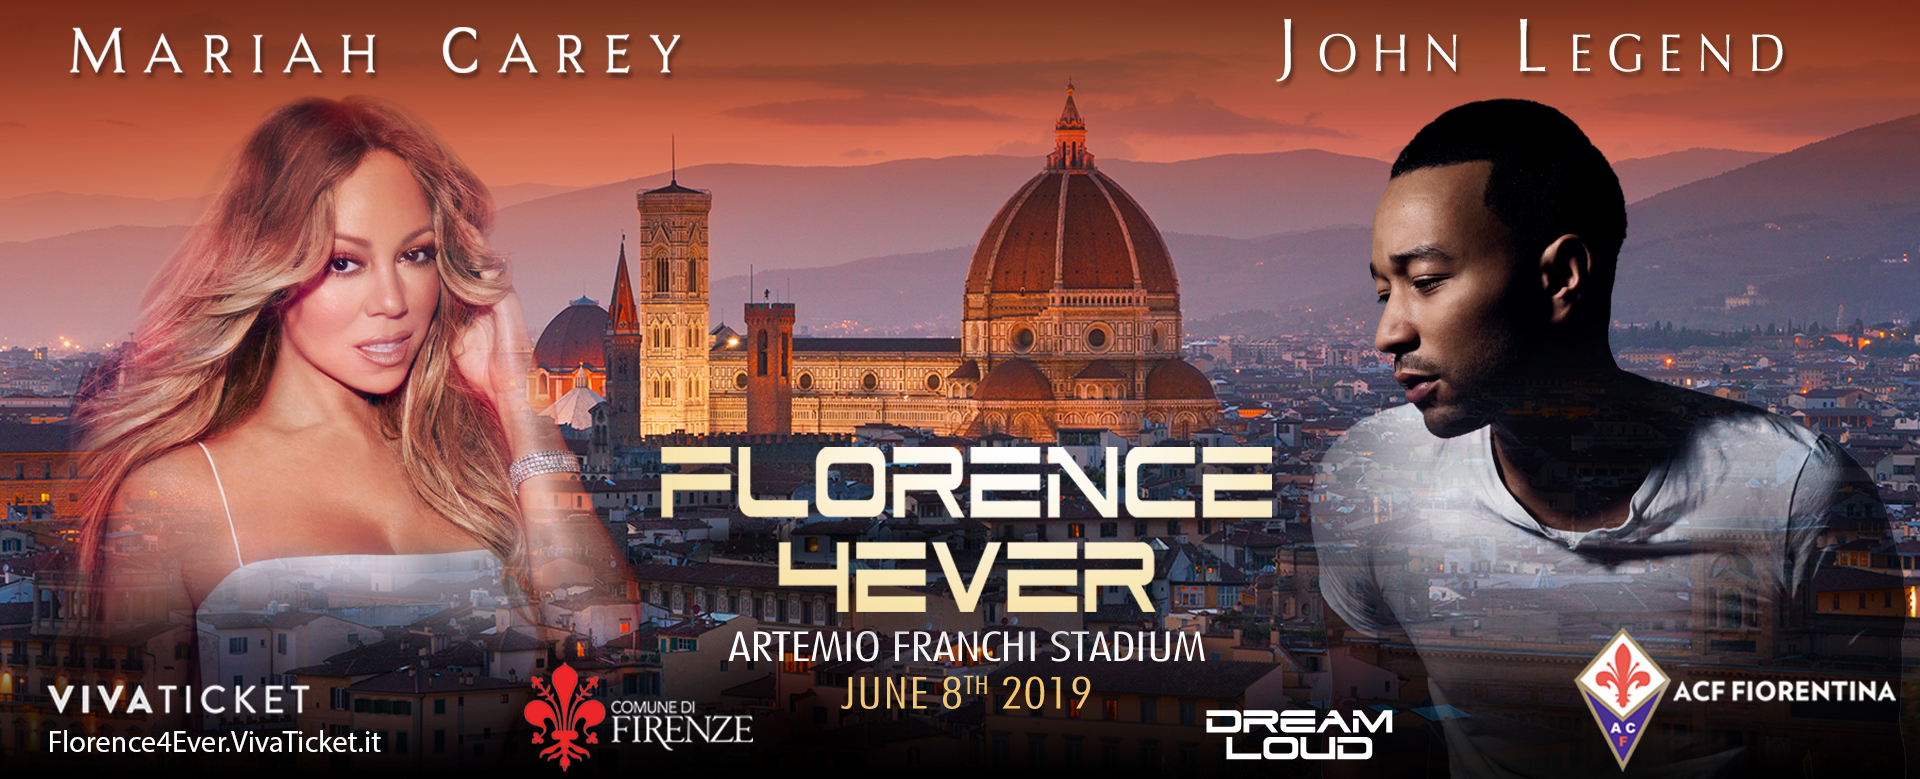 Florence4Ever poster with Mariah Carey and John Legend